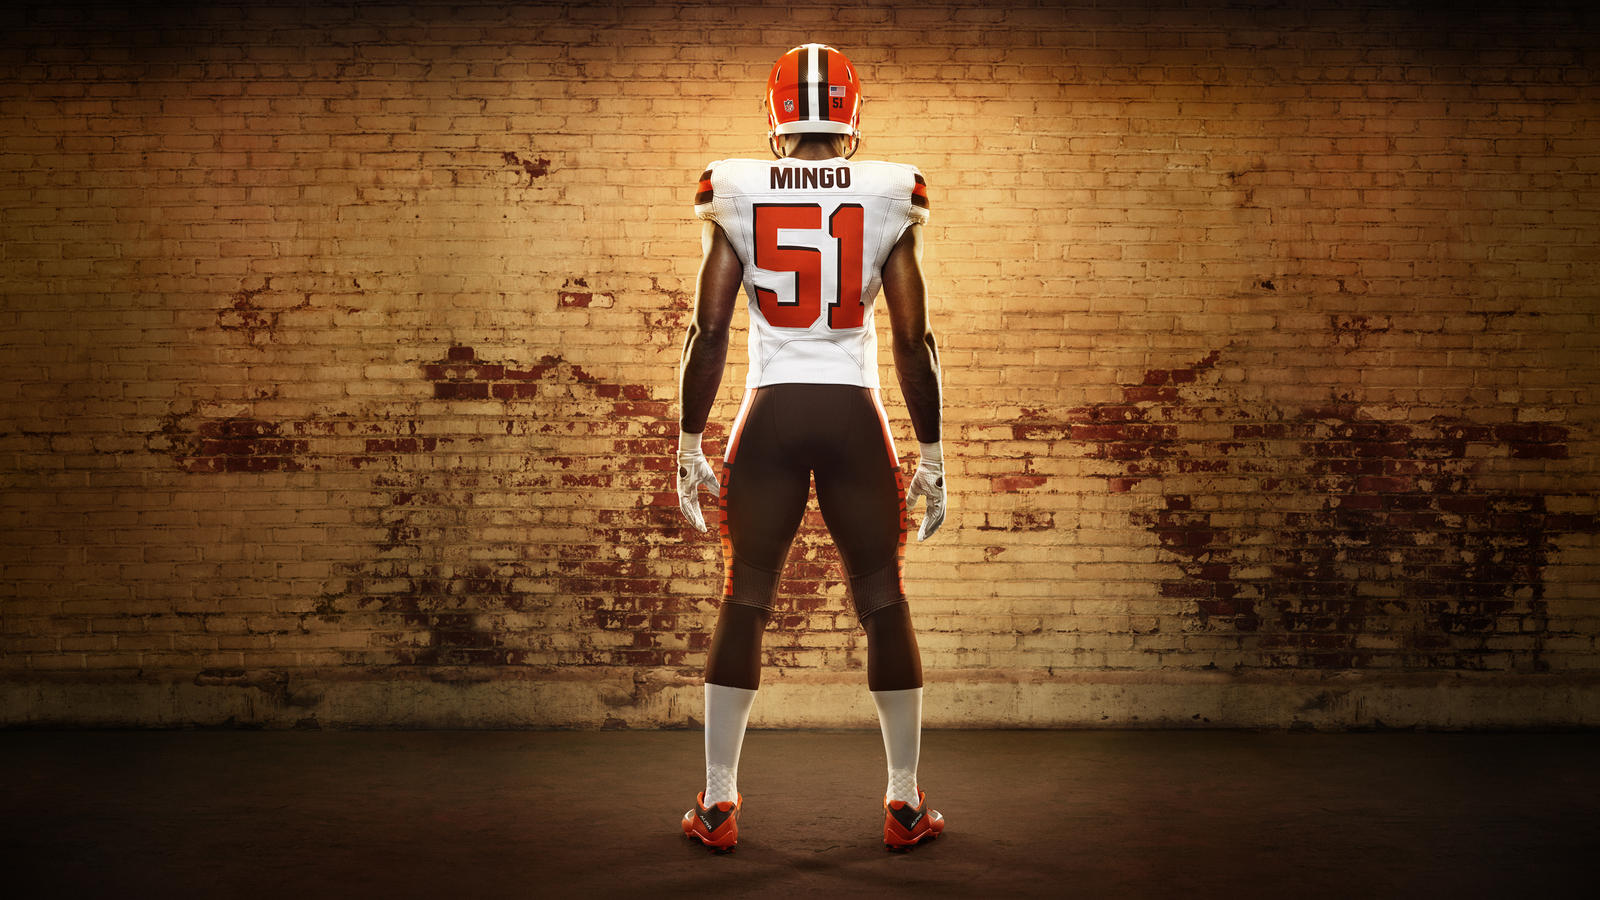 45626_268352_Nike_FB_Cleveland_Barkevious_Mingo_Soldiers_0076_16X9